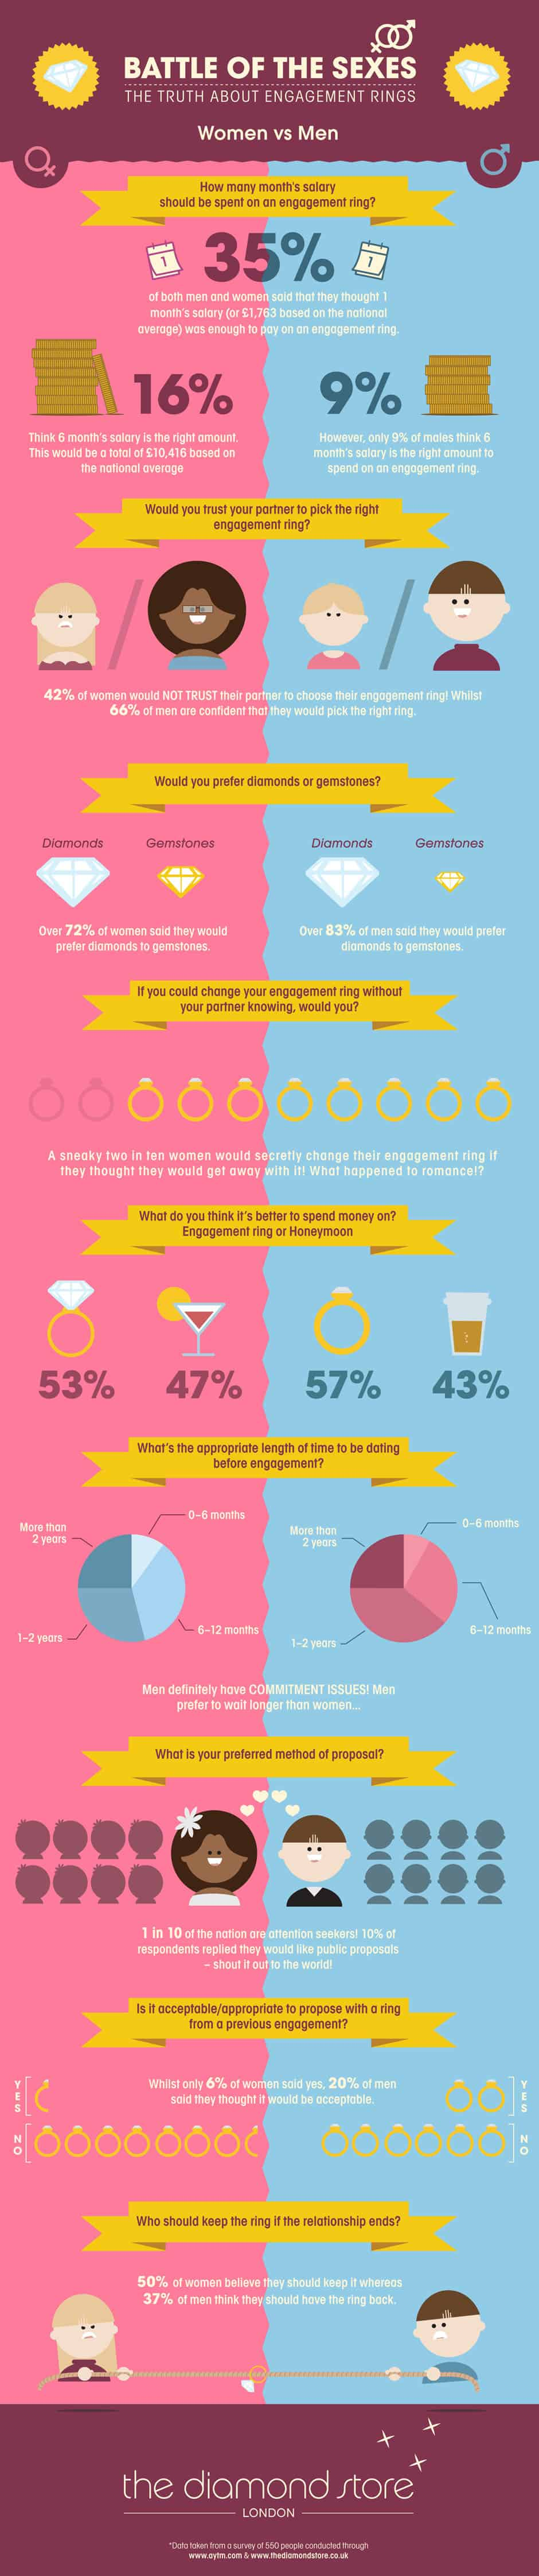 Read This Before You Invest In An Engagement Ring | Daily Infographic